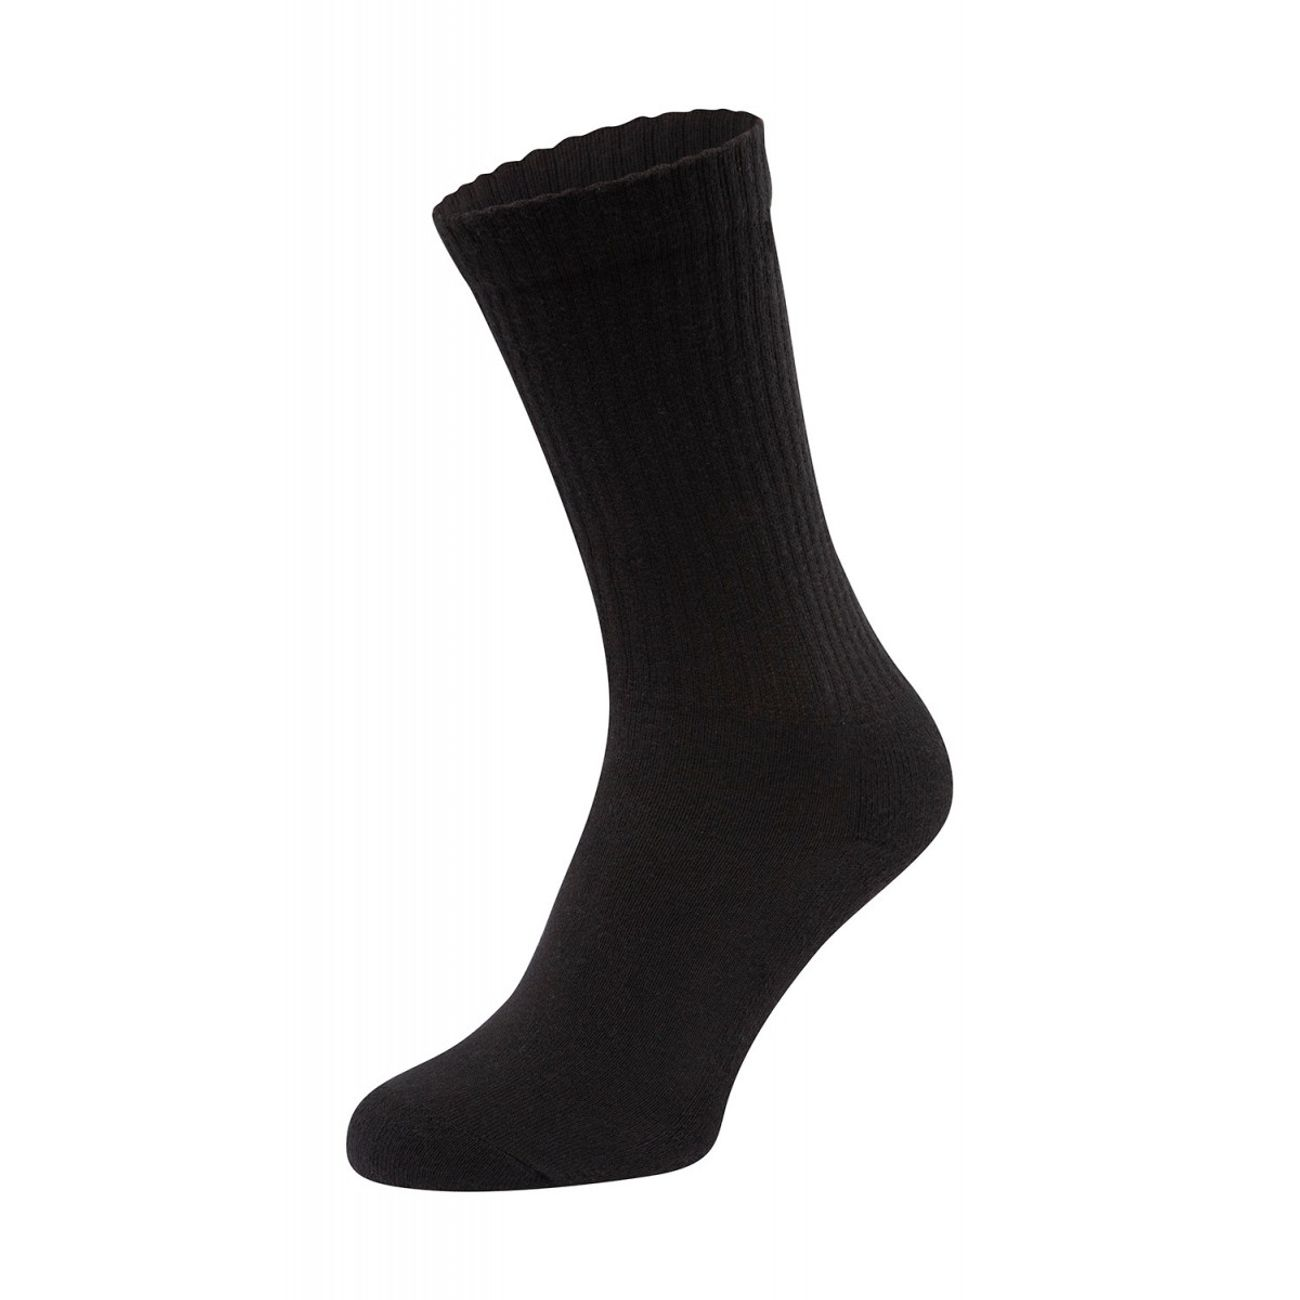 3 longues zNoir Homme Mi Pack 600 Of 67 Fruit Paires Loom ModeLifestyle The Chaussettes 3LR54jAq